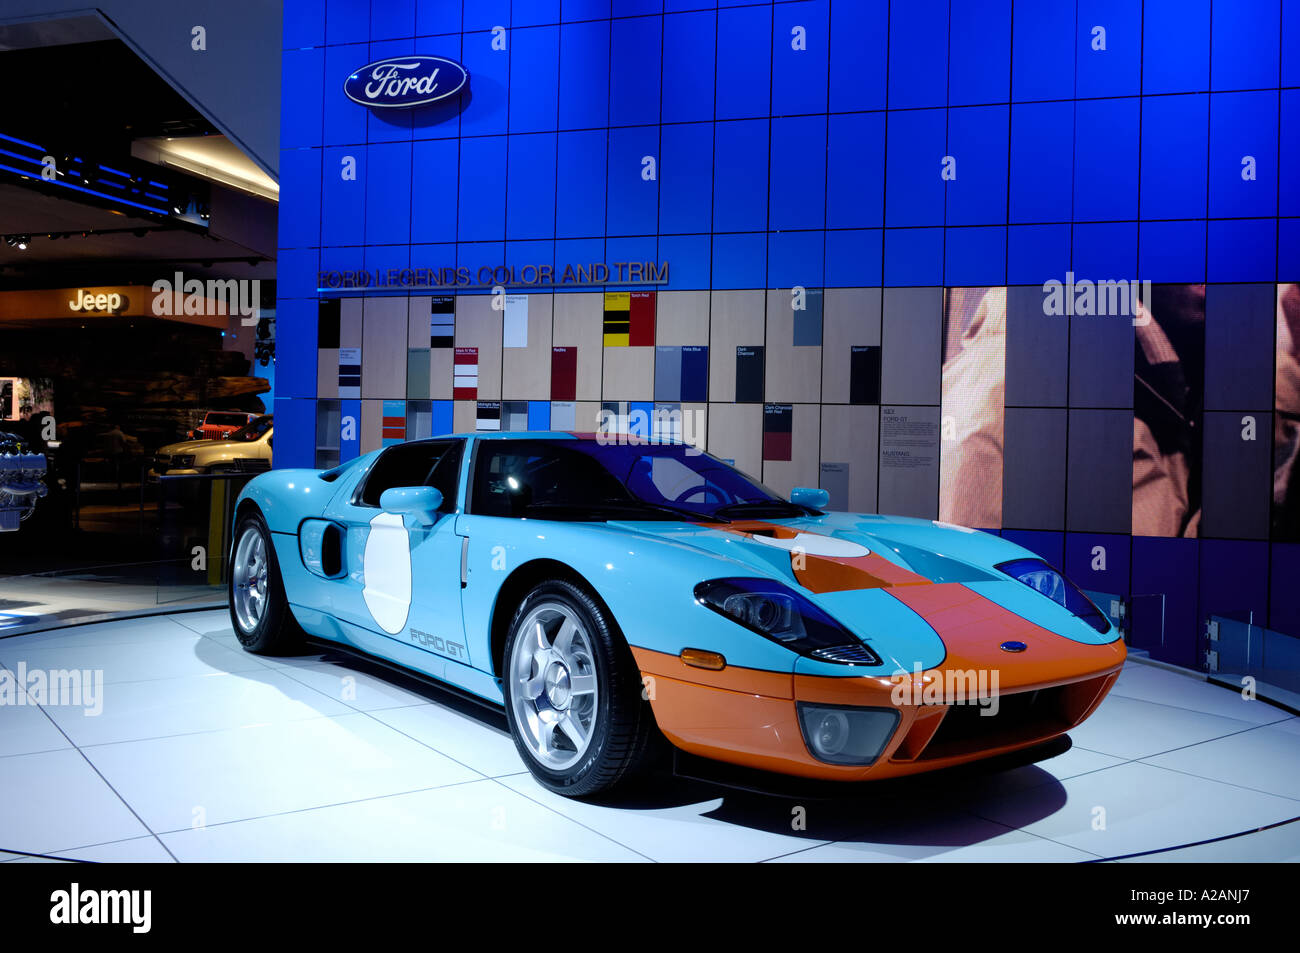 Ford Gt With In The Special Heritage Blue And Orange Livery At The  North